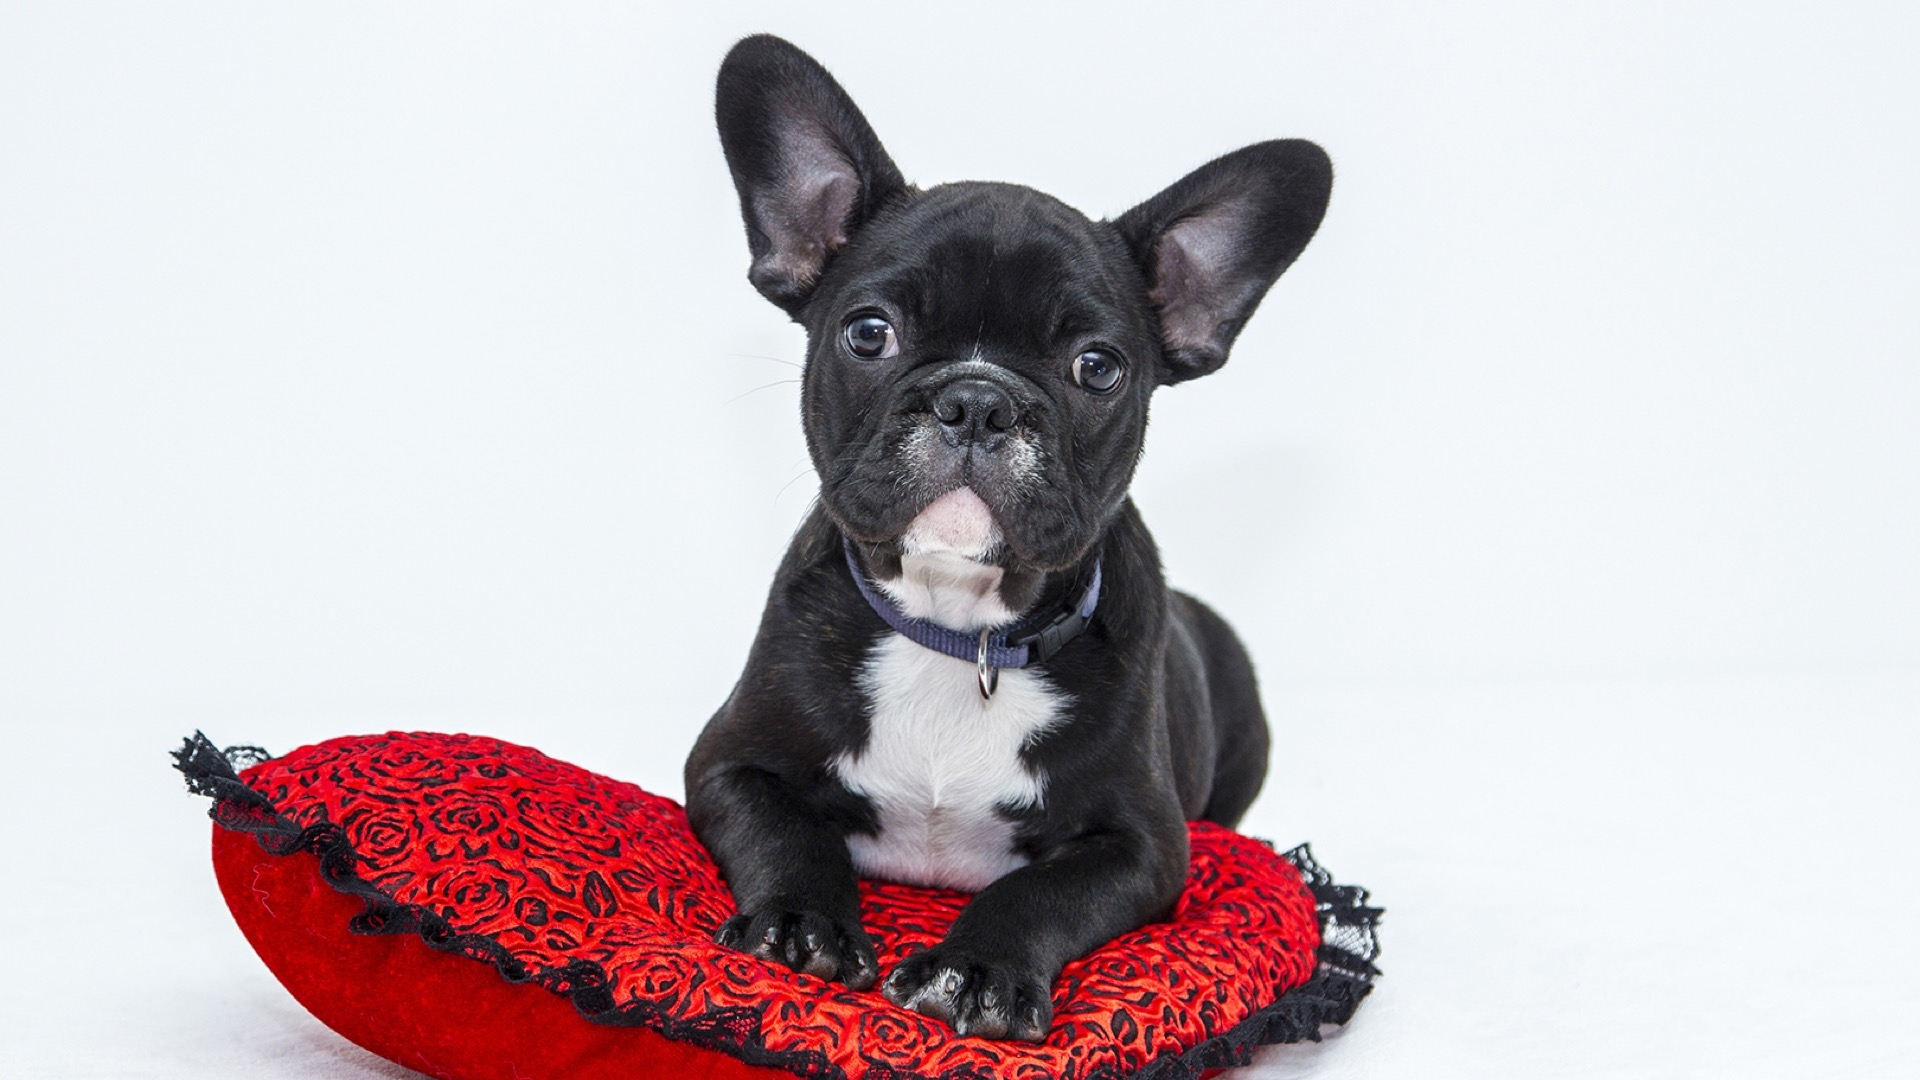 frenchie on red pillow